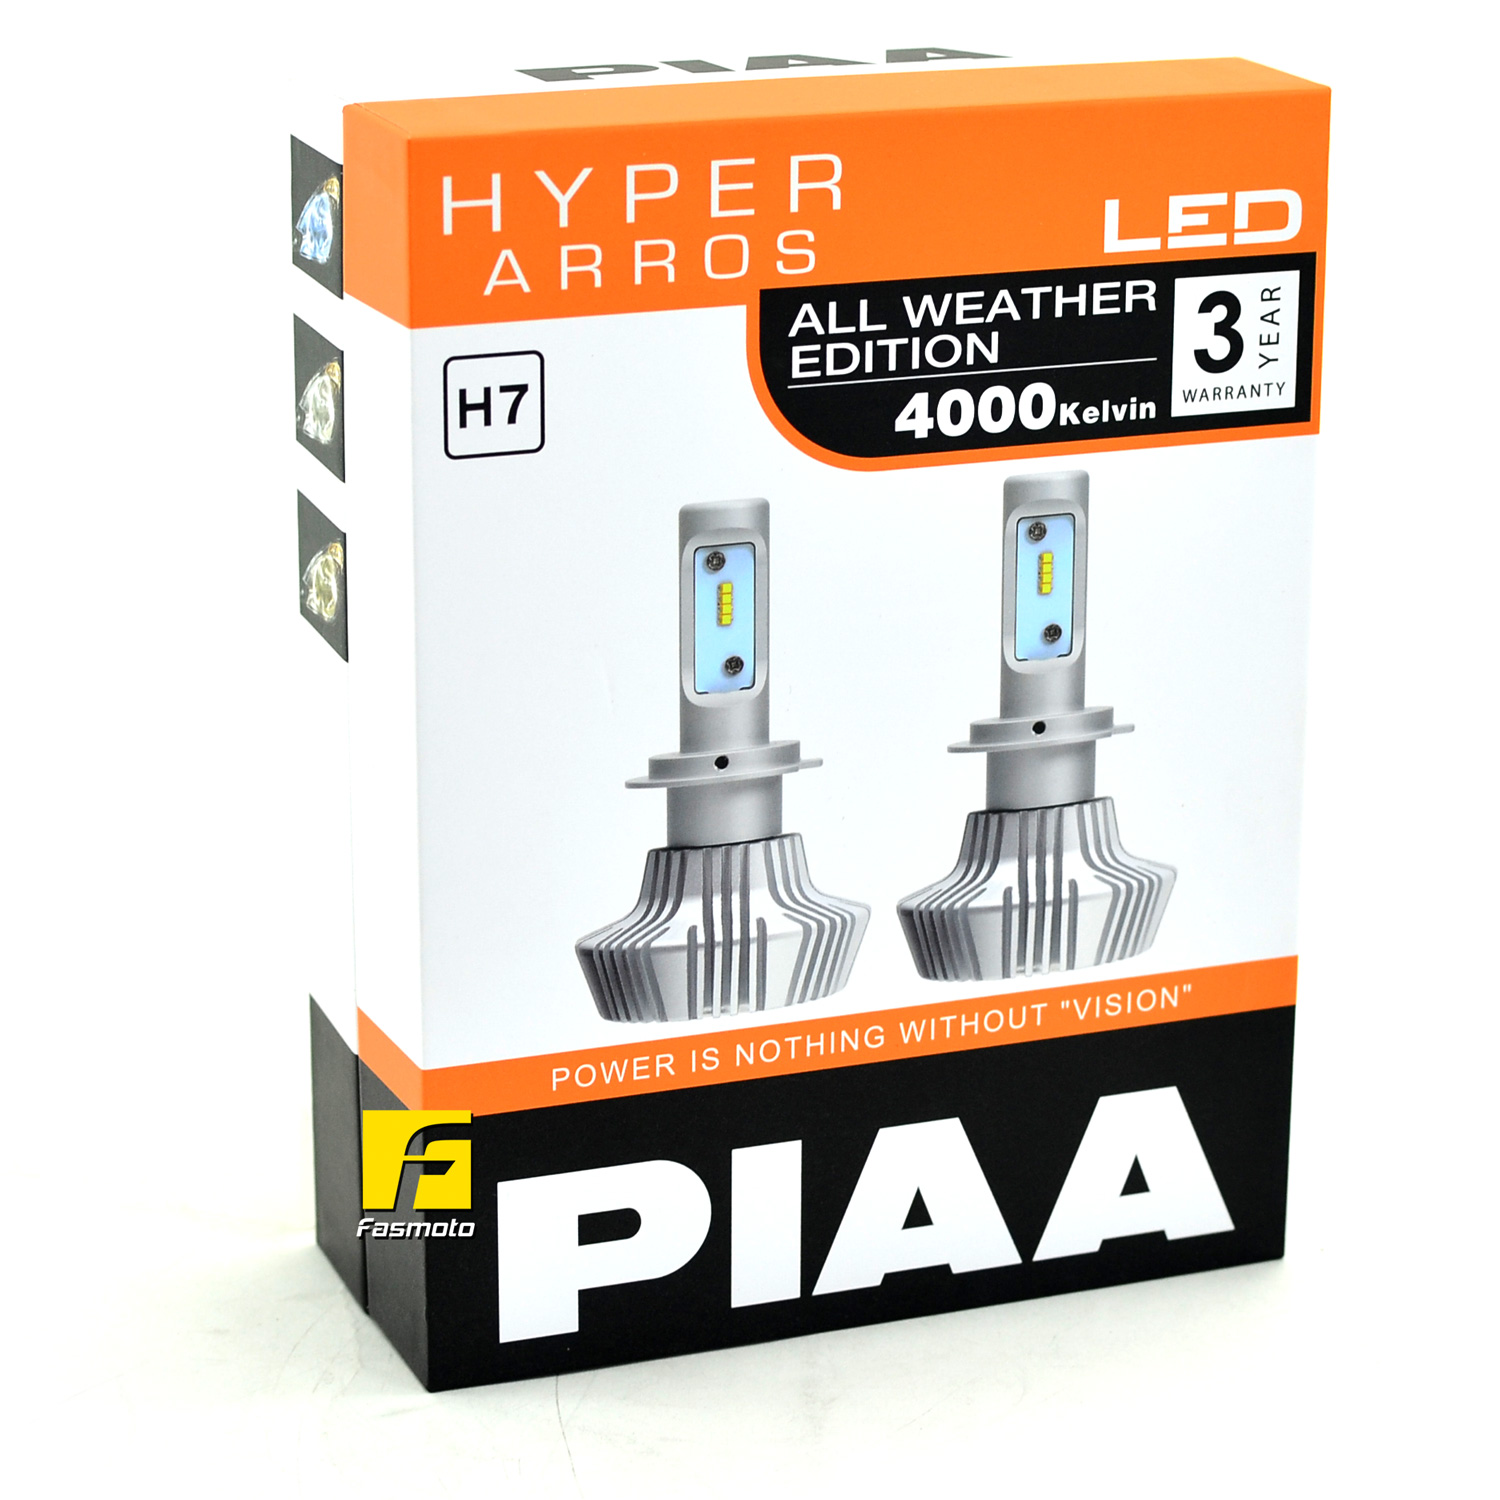 Genuine PIAA LEH133E Hyper Arros All Weather Edition 4000K LED for H7 bulb replacement with 3 Years PIAA Malaysia Warranty